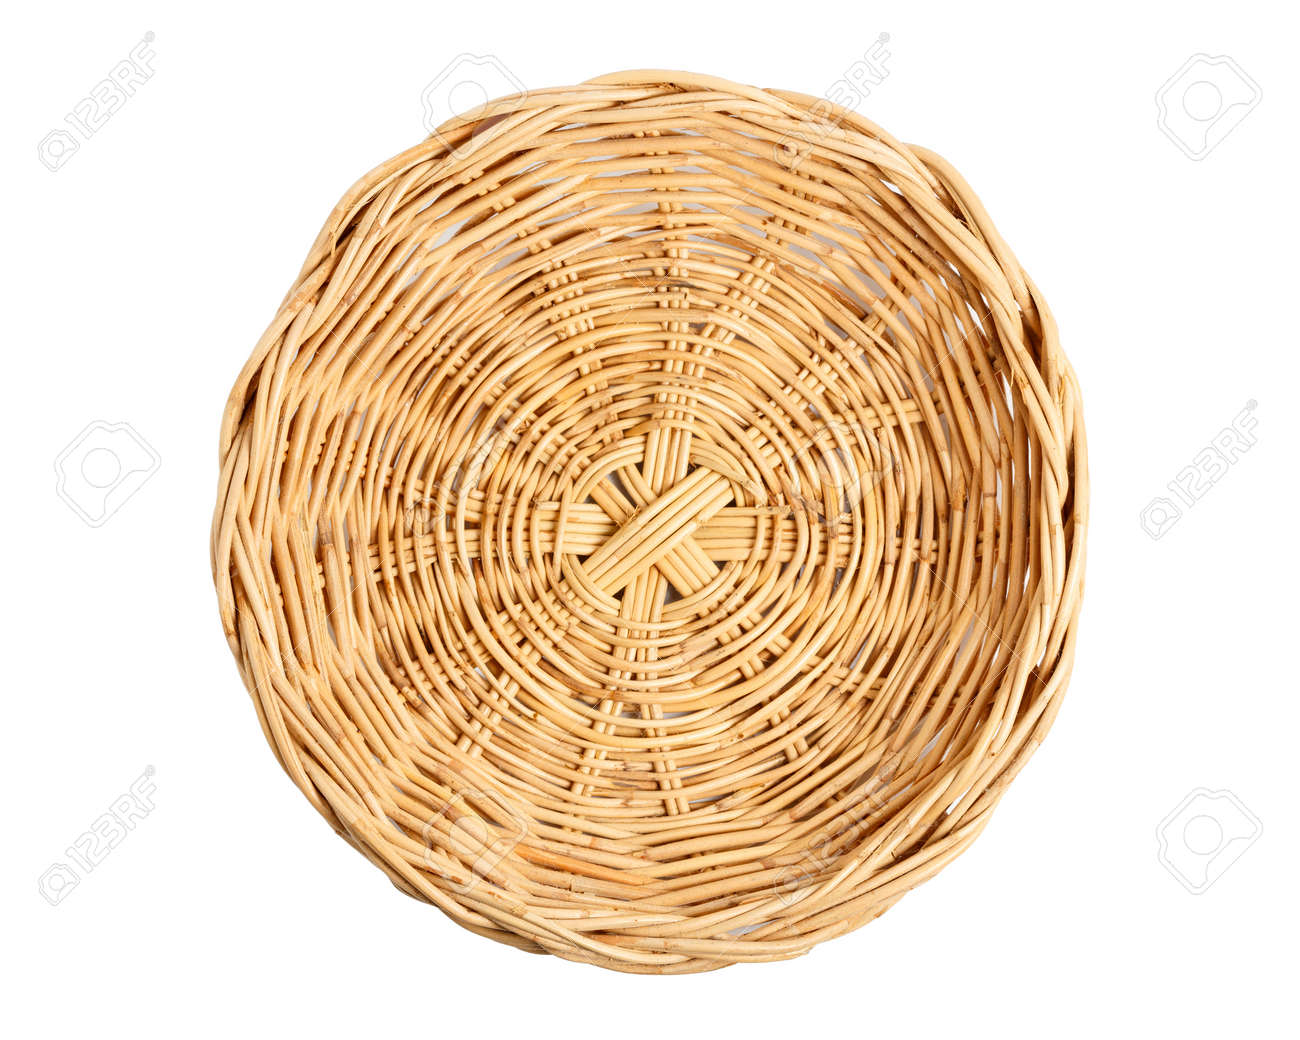 Empty Basket, Wicker baskets, Bamboo basket on white background. Top view. - 165180466